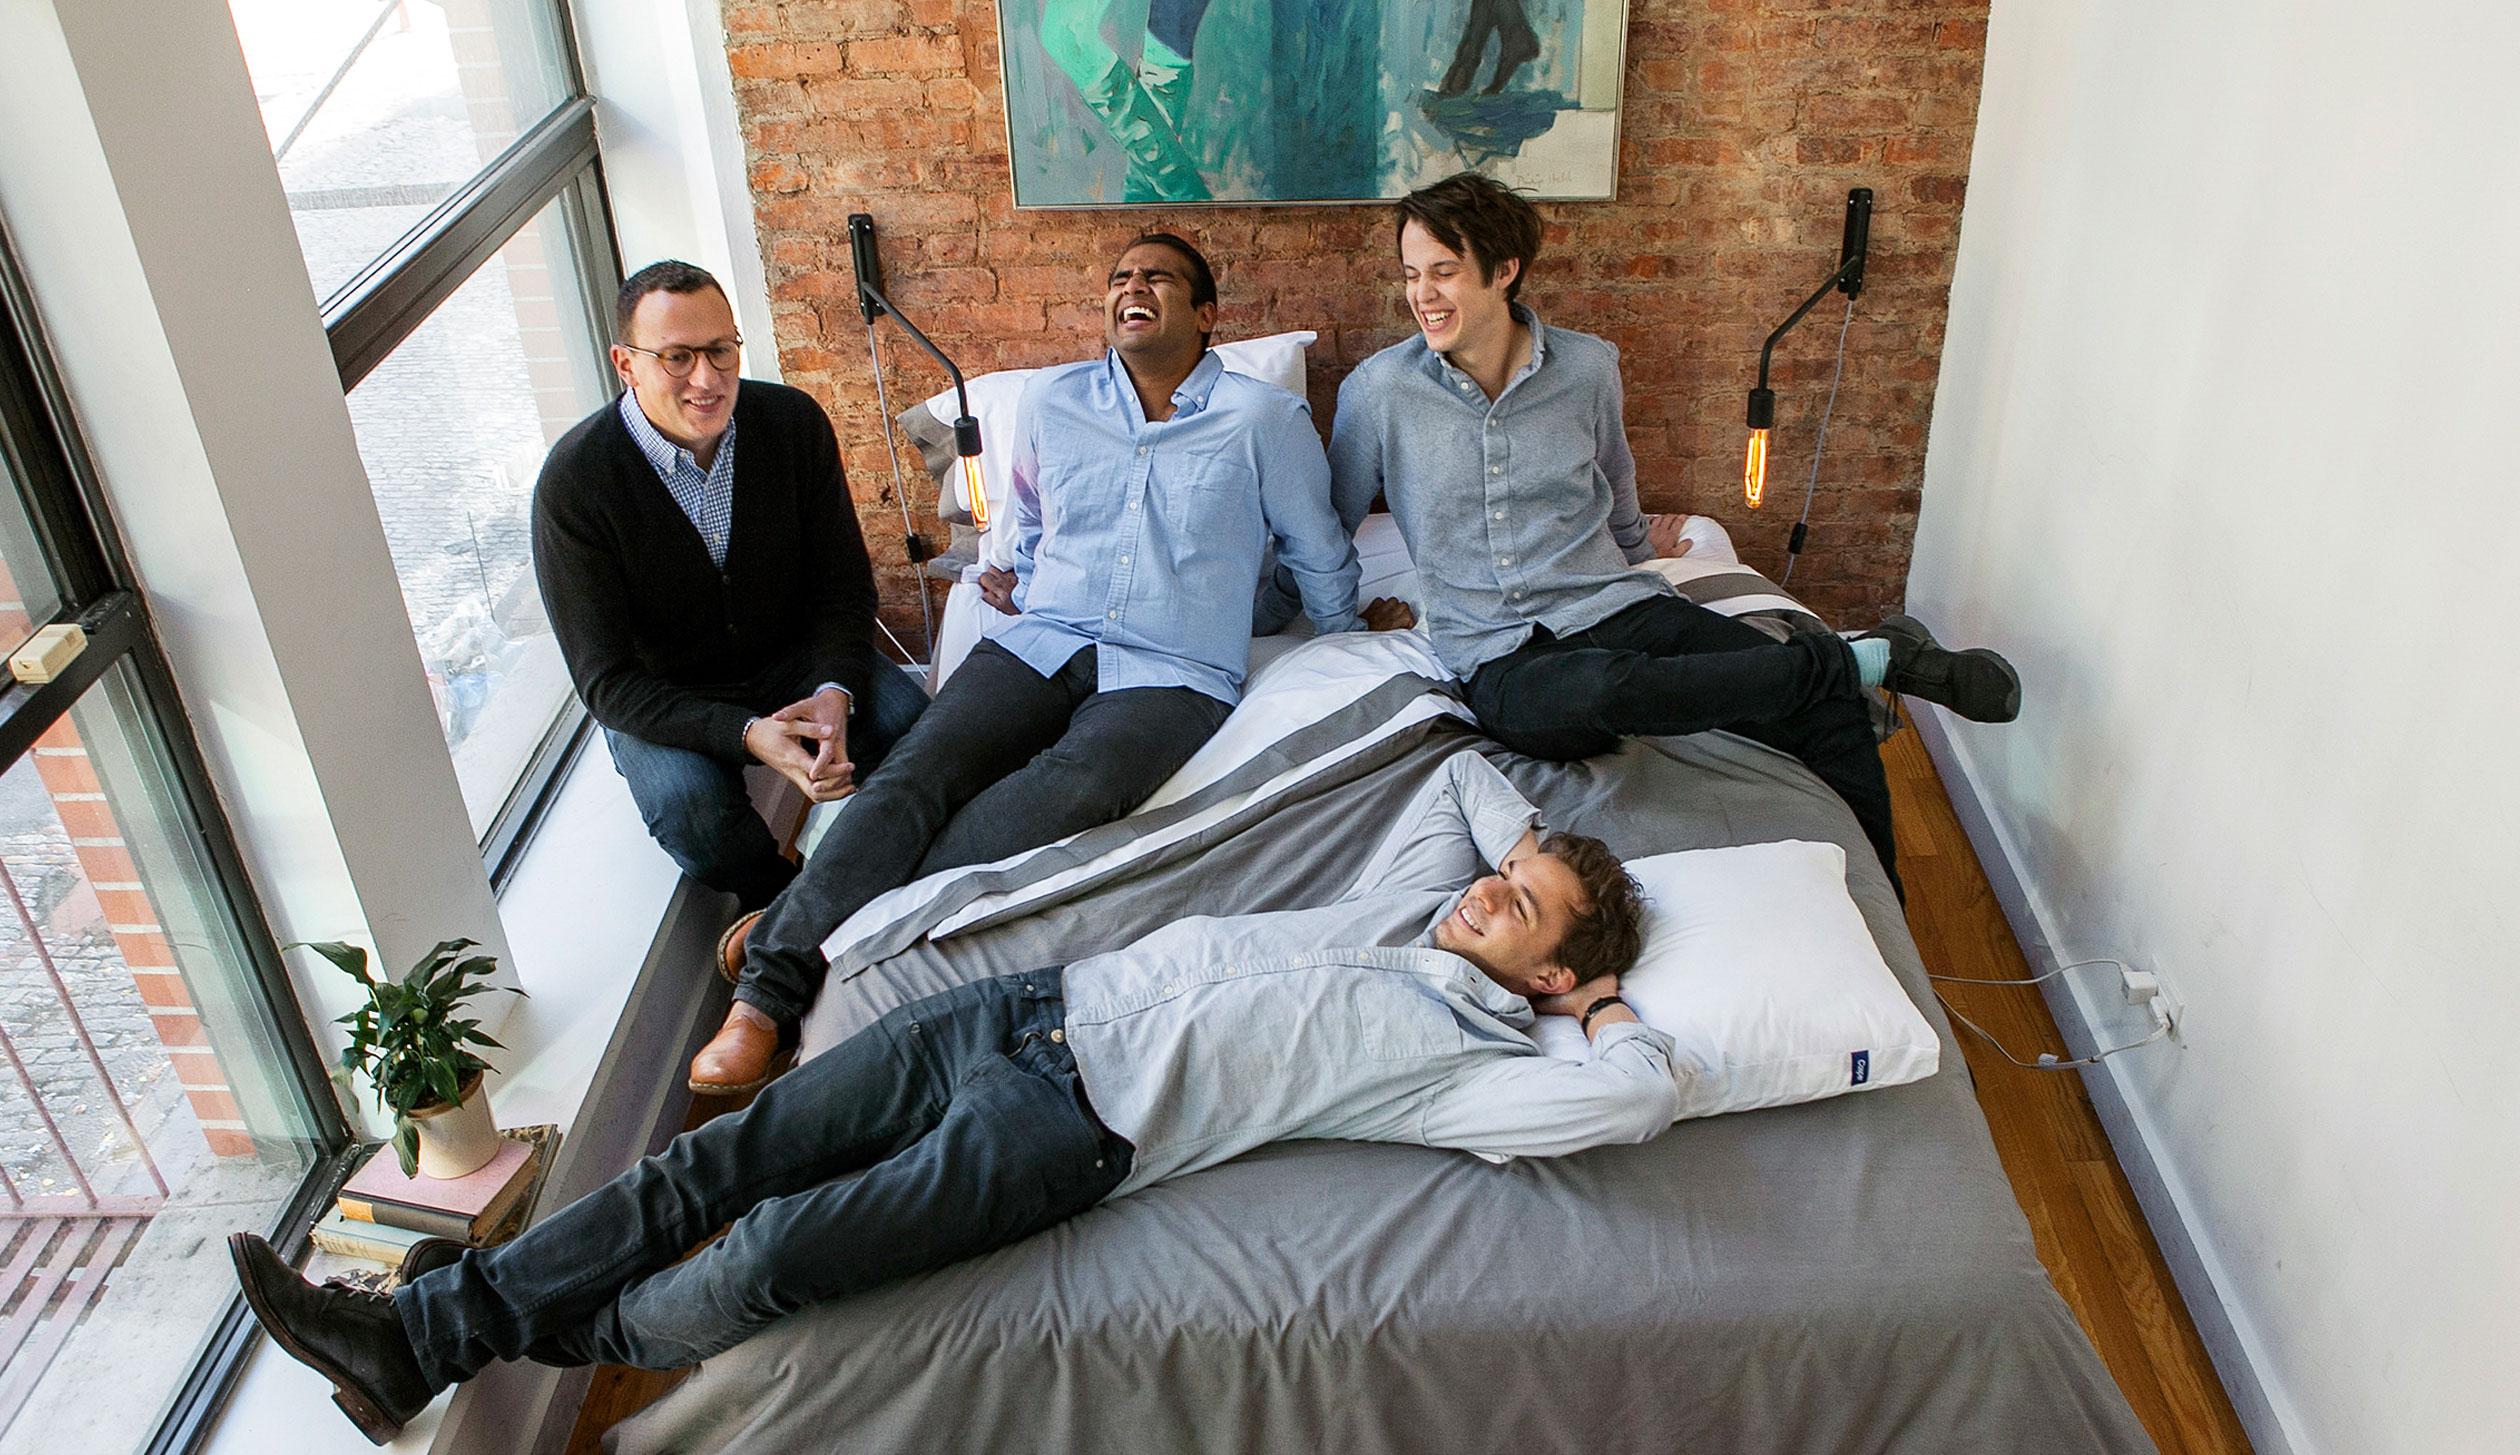 Clockwise from left: Casper CEO Philip Krim, COO Neil Parikh, chief creative officer Luke Sherwin, and CTO Gabriel Flateman.